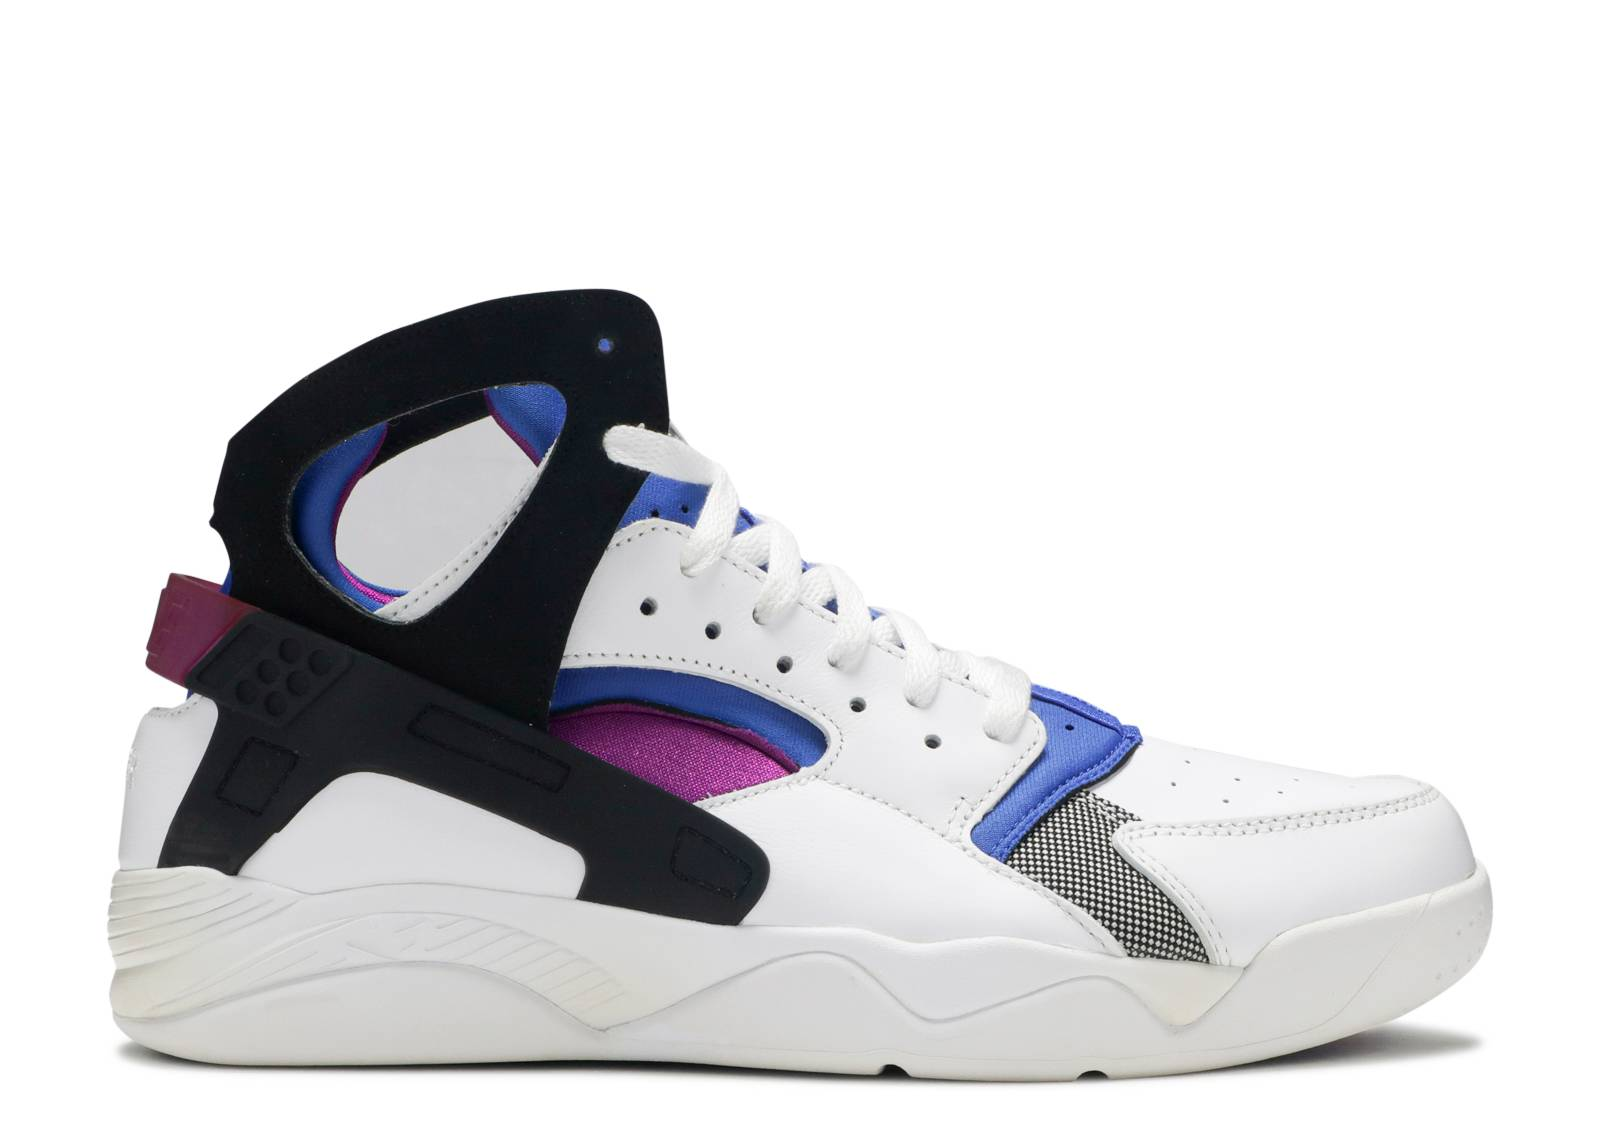 c4f08b380203 Air Flight Huarache Prm Qs